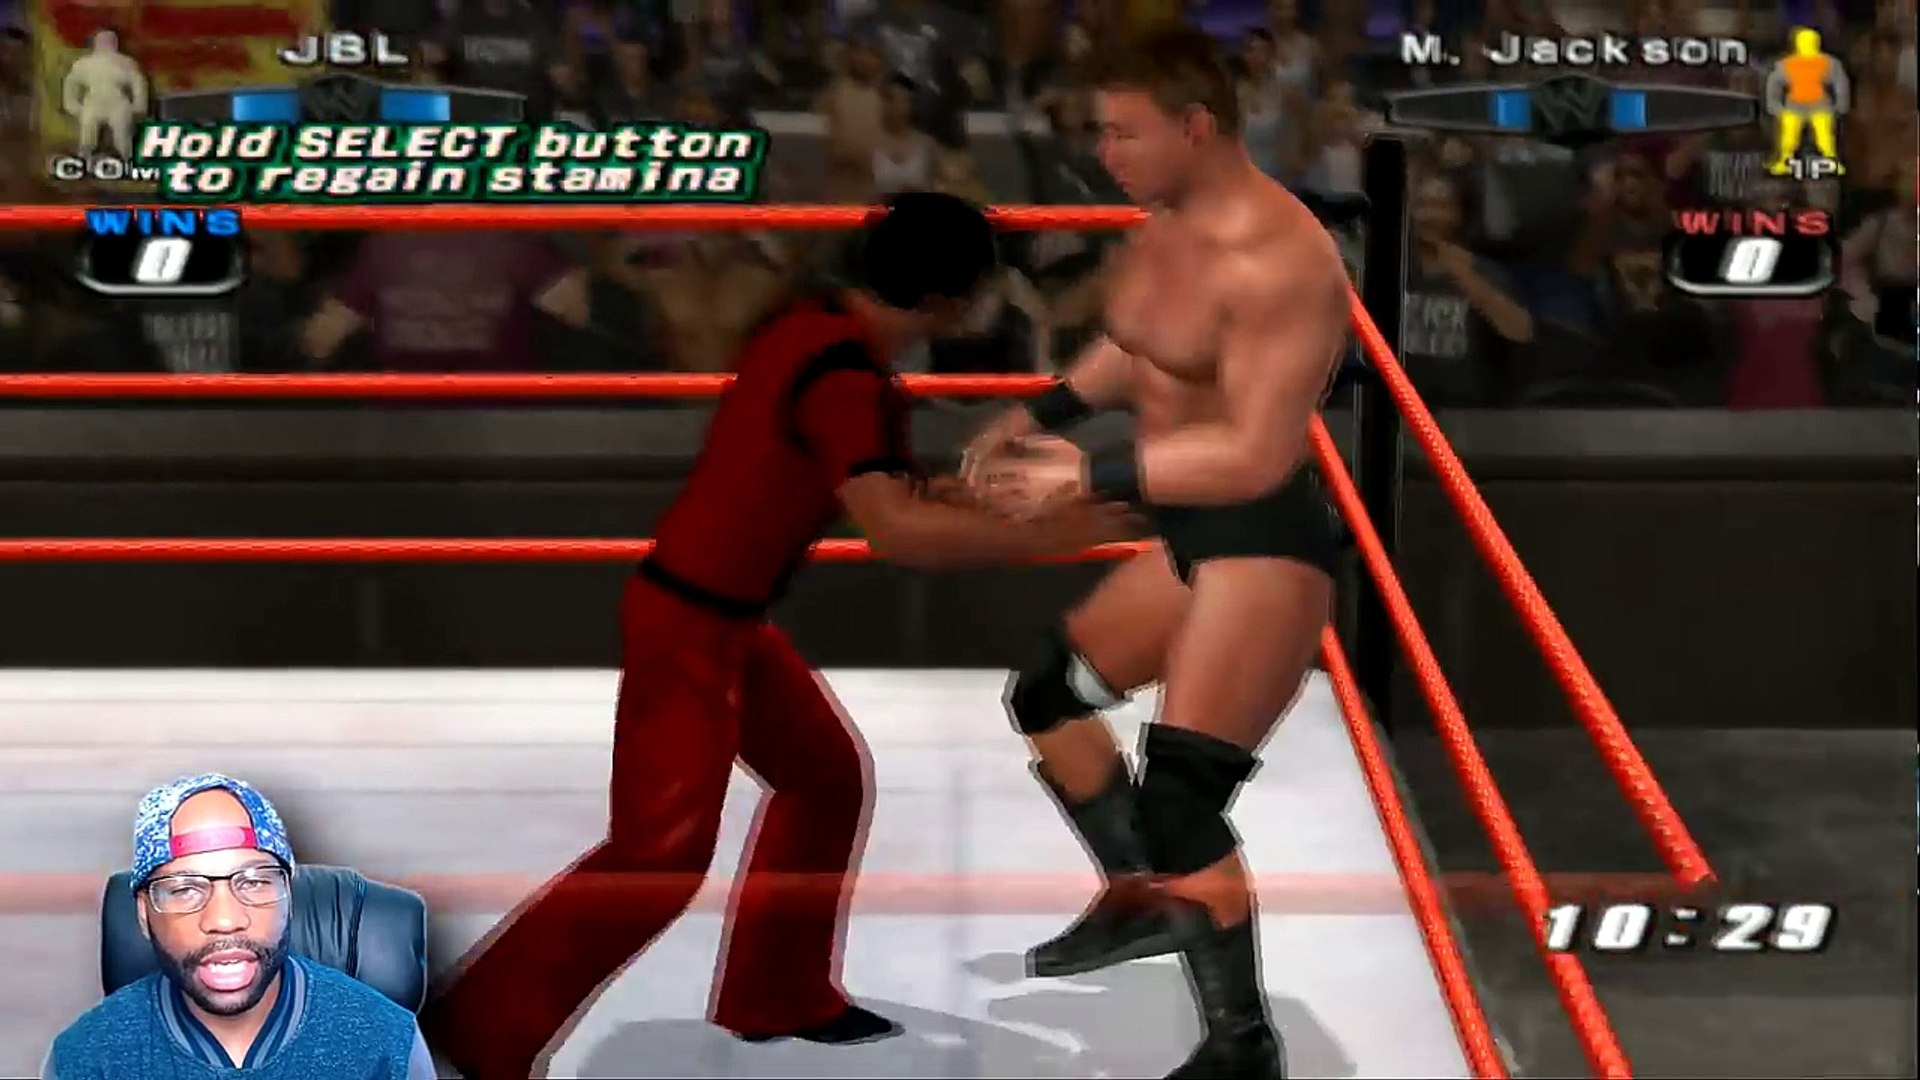 WWE SMACKDOWN VS RAW 2006 SEASON MODE PART 6 THE RAGE IS REAL (SVR 2006)